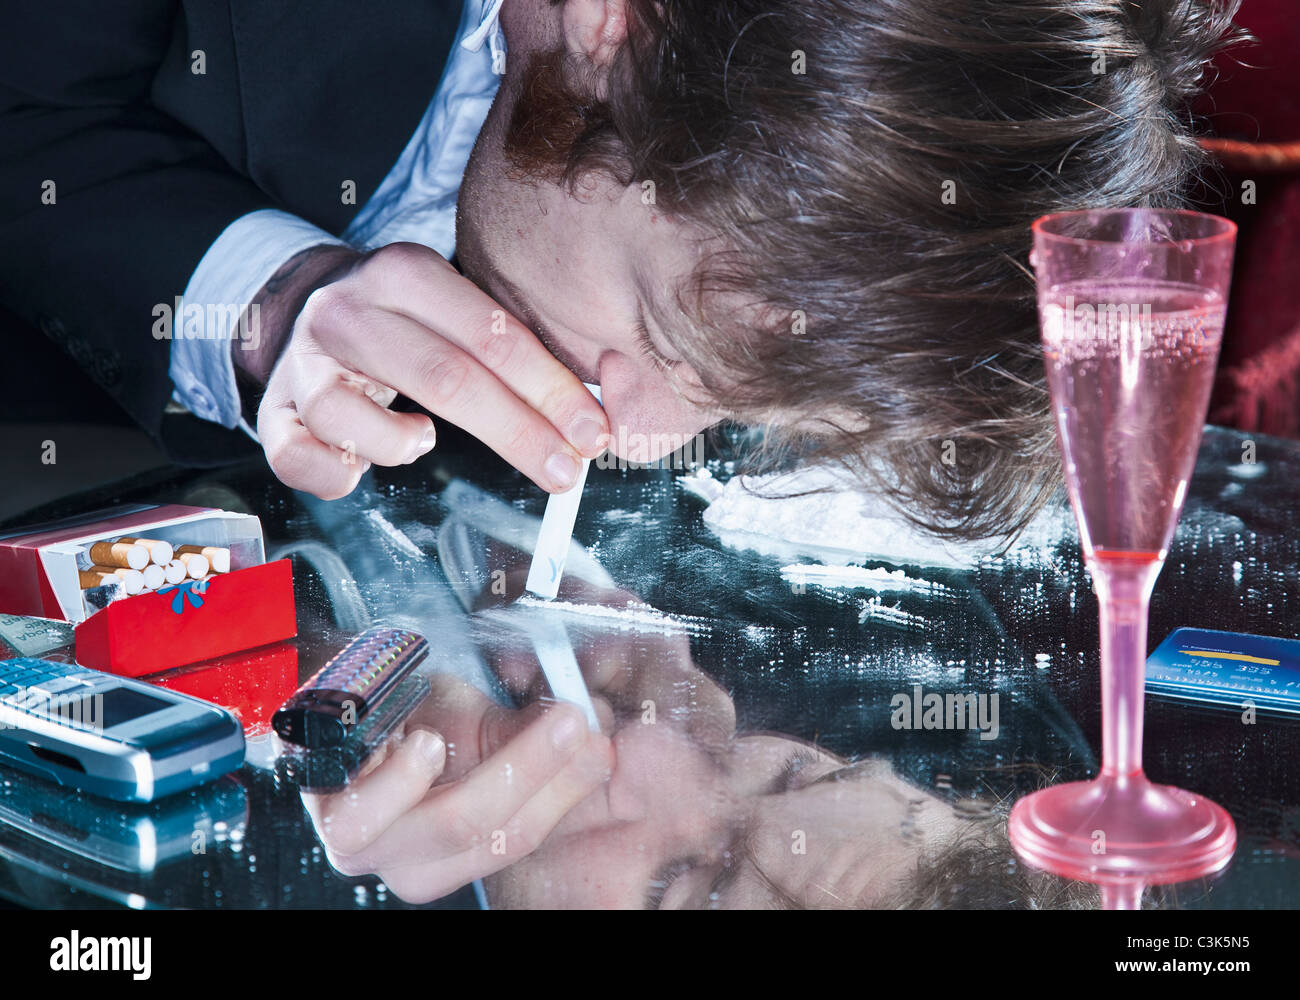 young-man-sniffing-cocaine-C3K5N5.jpg